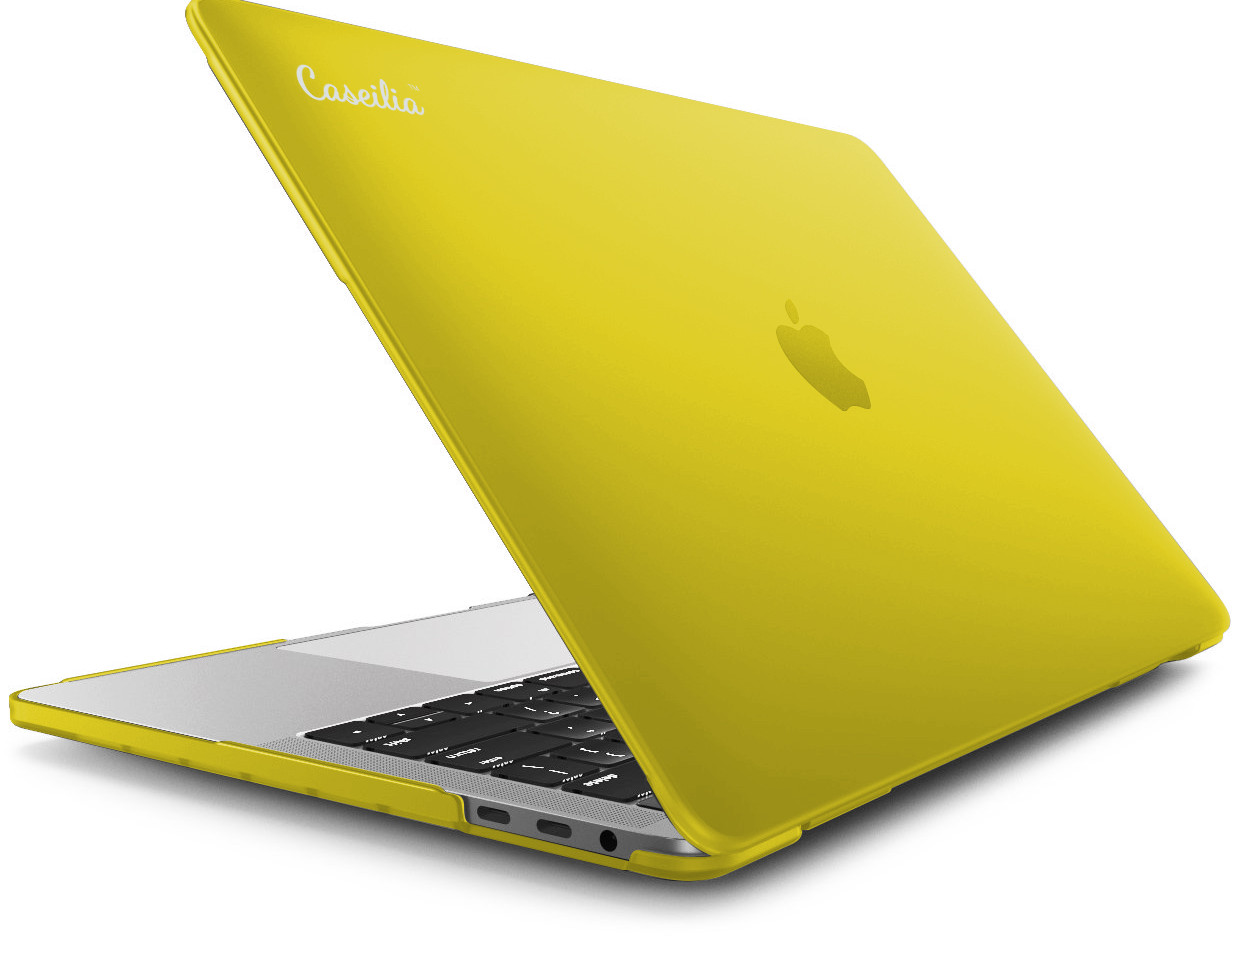 Caseilia_MacBook_MATTE-yellow.jpg